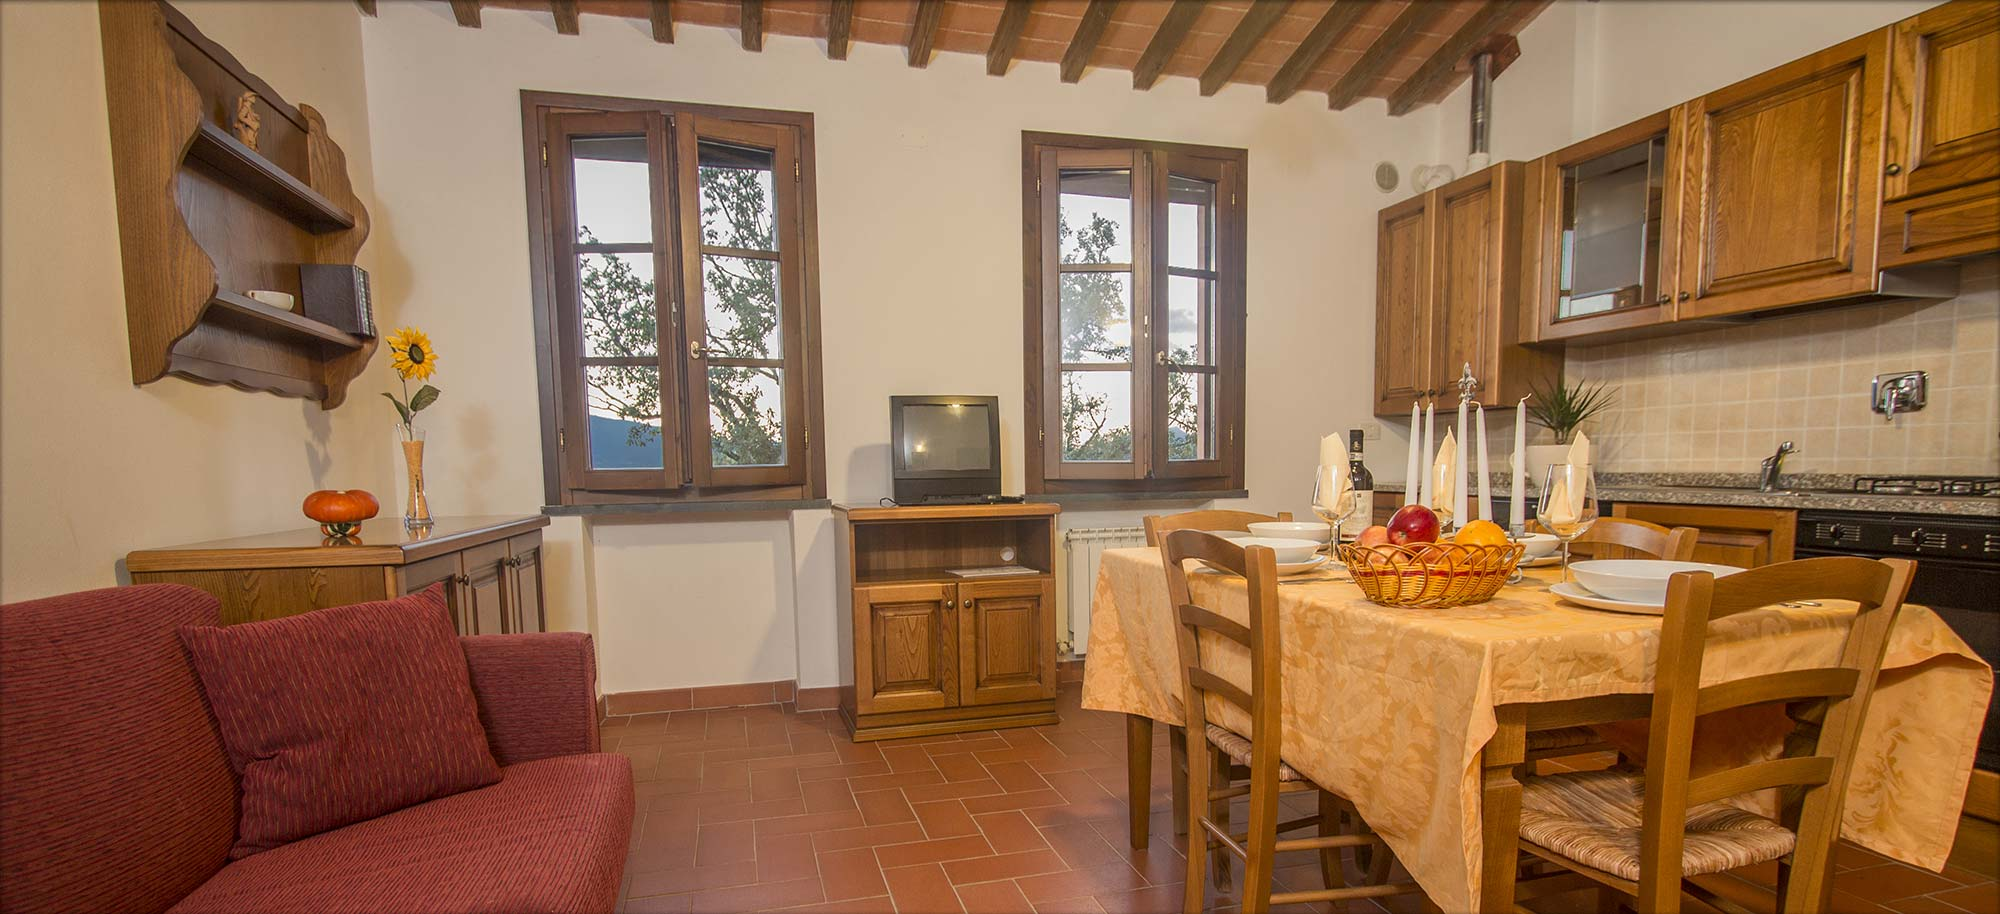 Corte Tommasi - Holiday apartments in Tuscany - 206 - Tuscany apartment with swimming pool